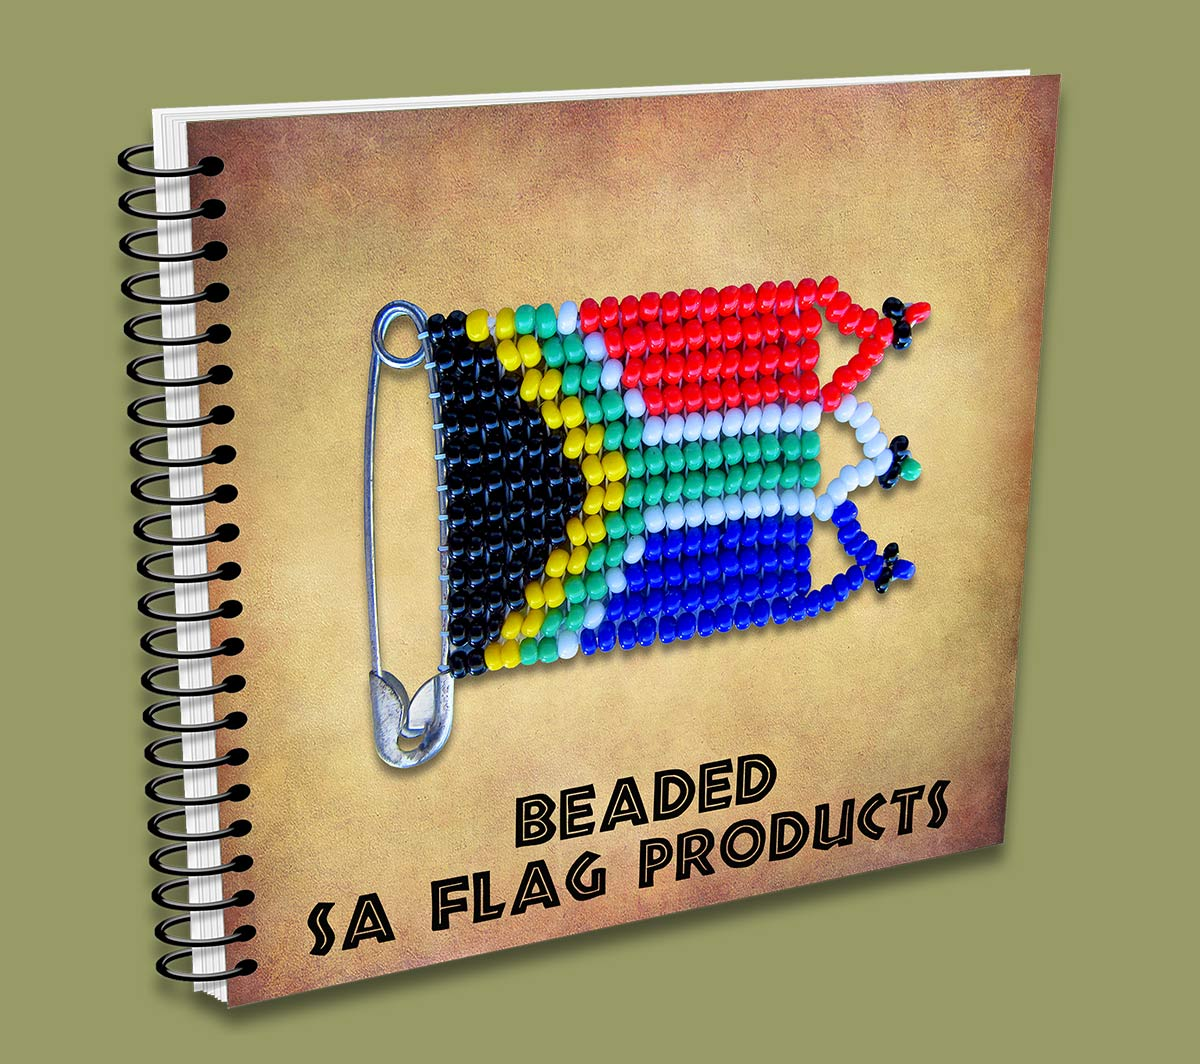 beaded-sa-flag-catalogue-2